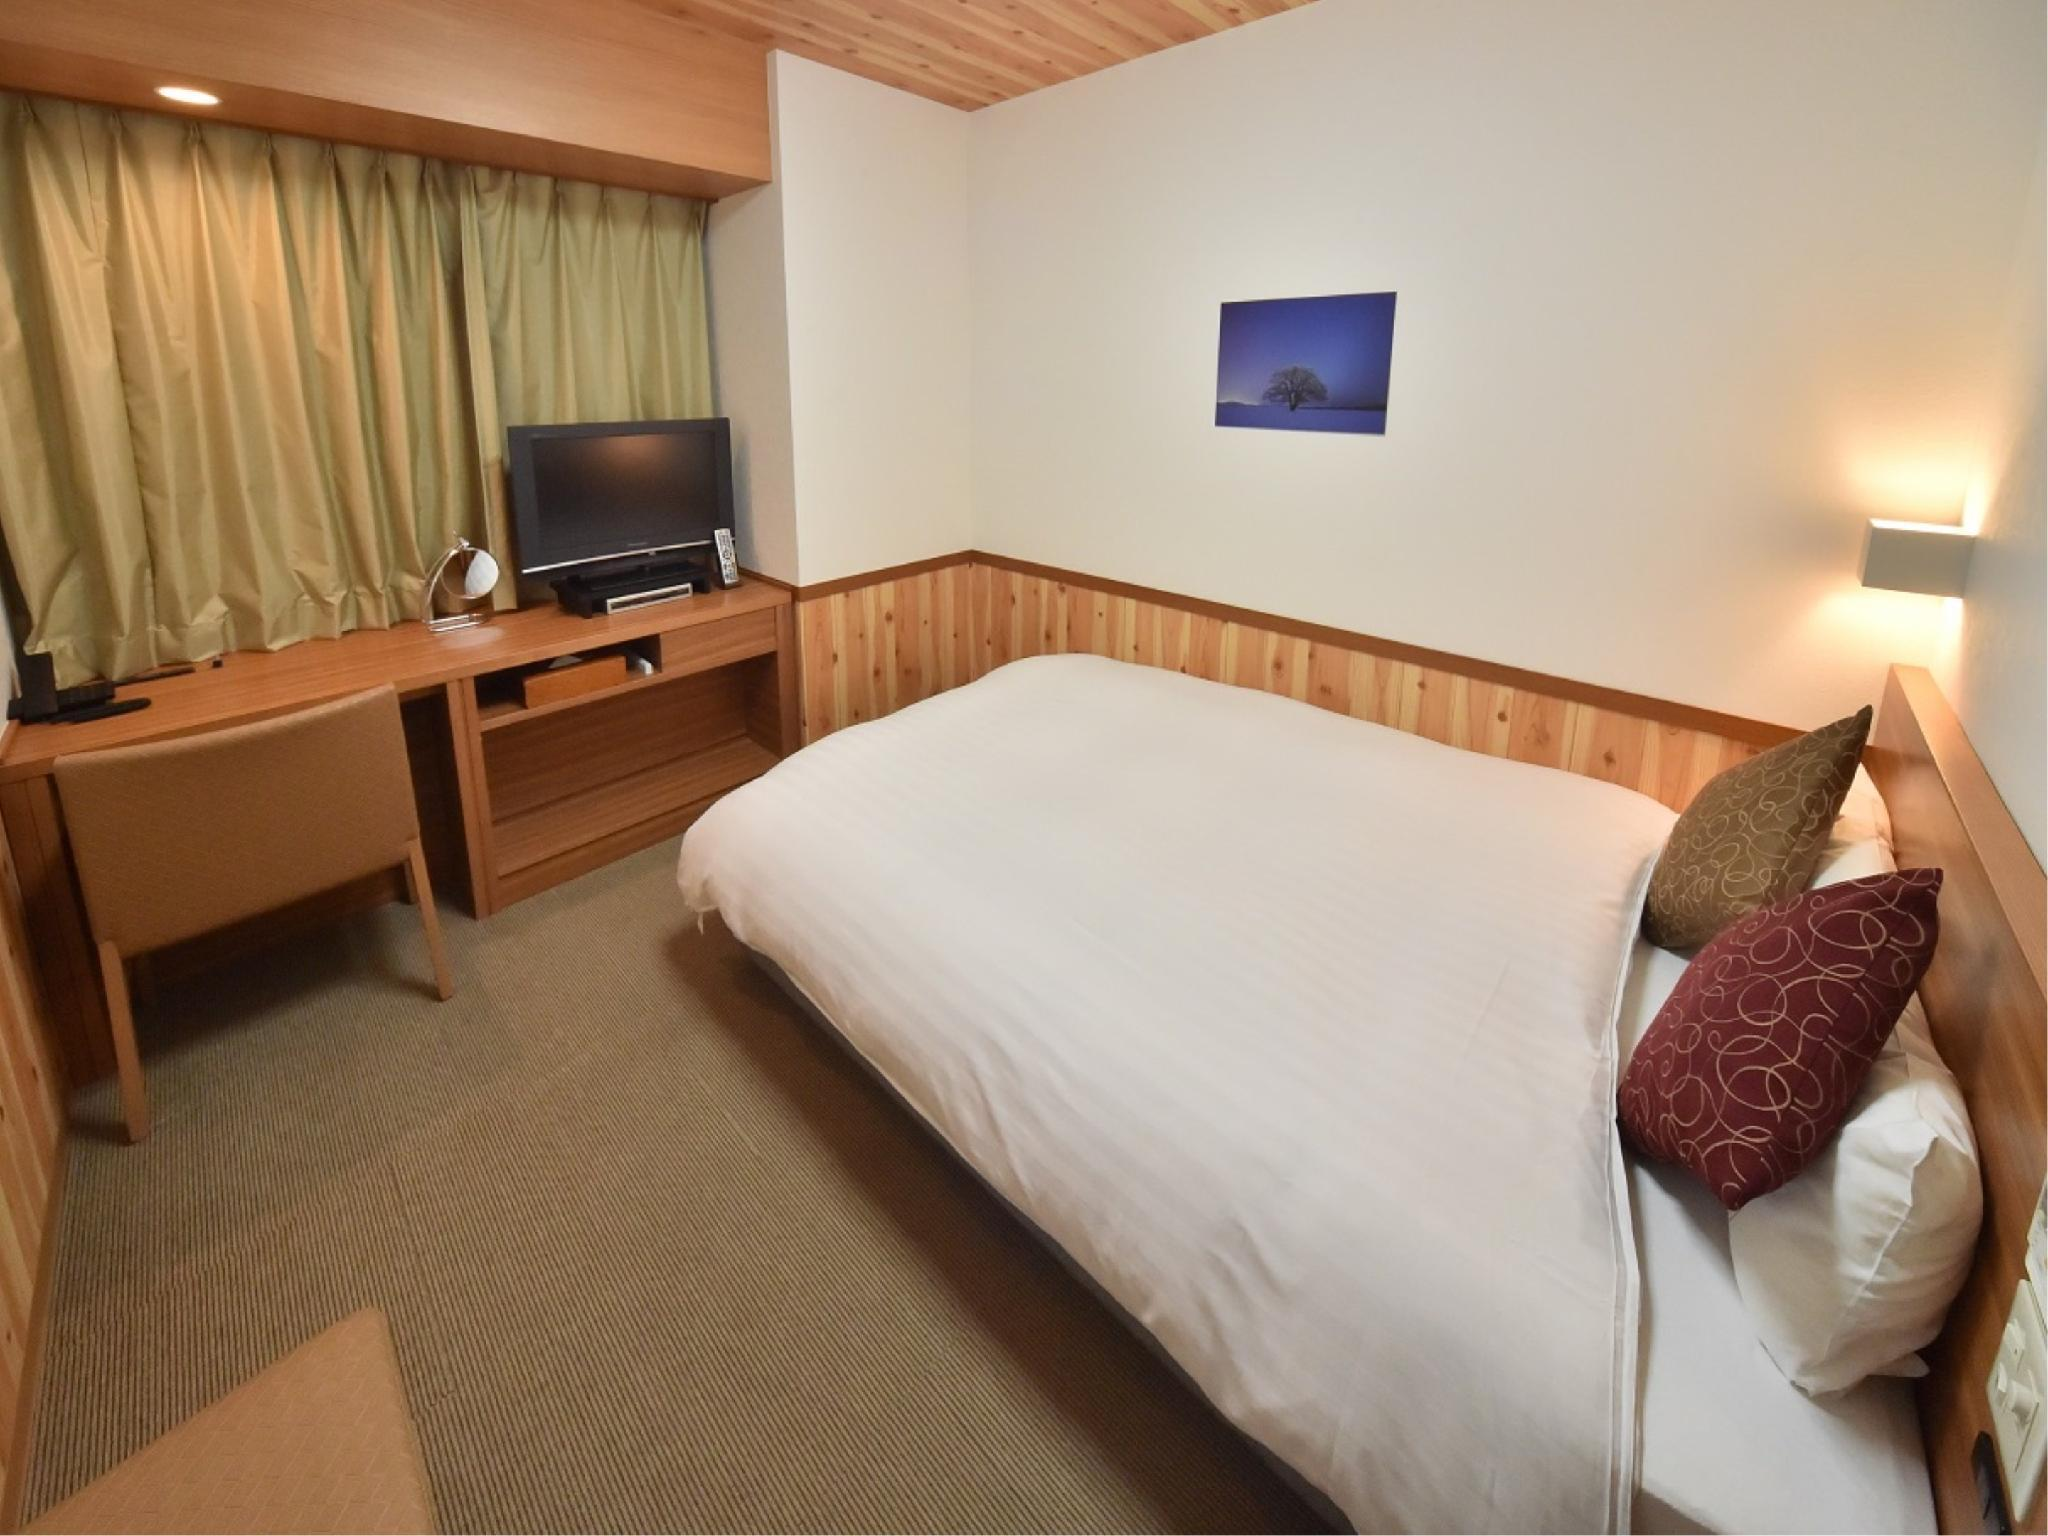 雙人大床房(淋浴) (Double Room*Has shower, no bath in room)